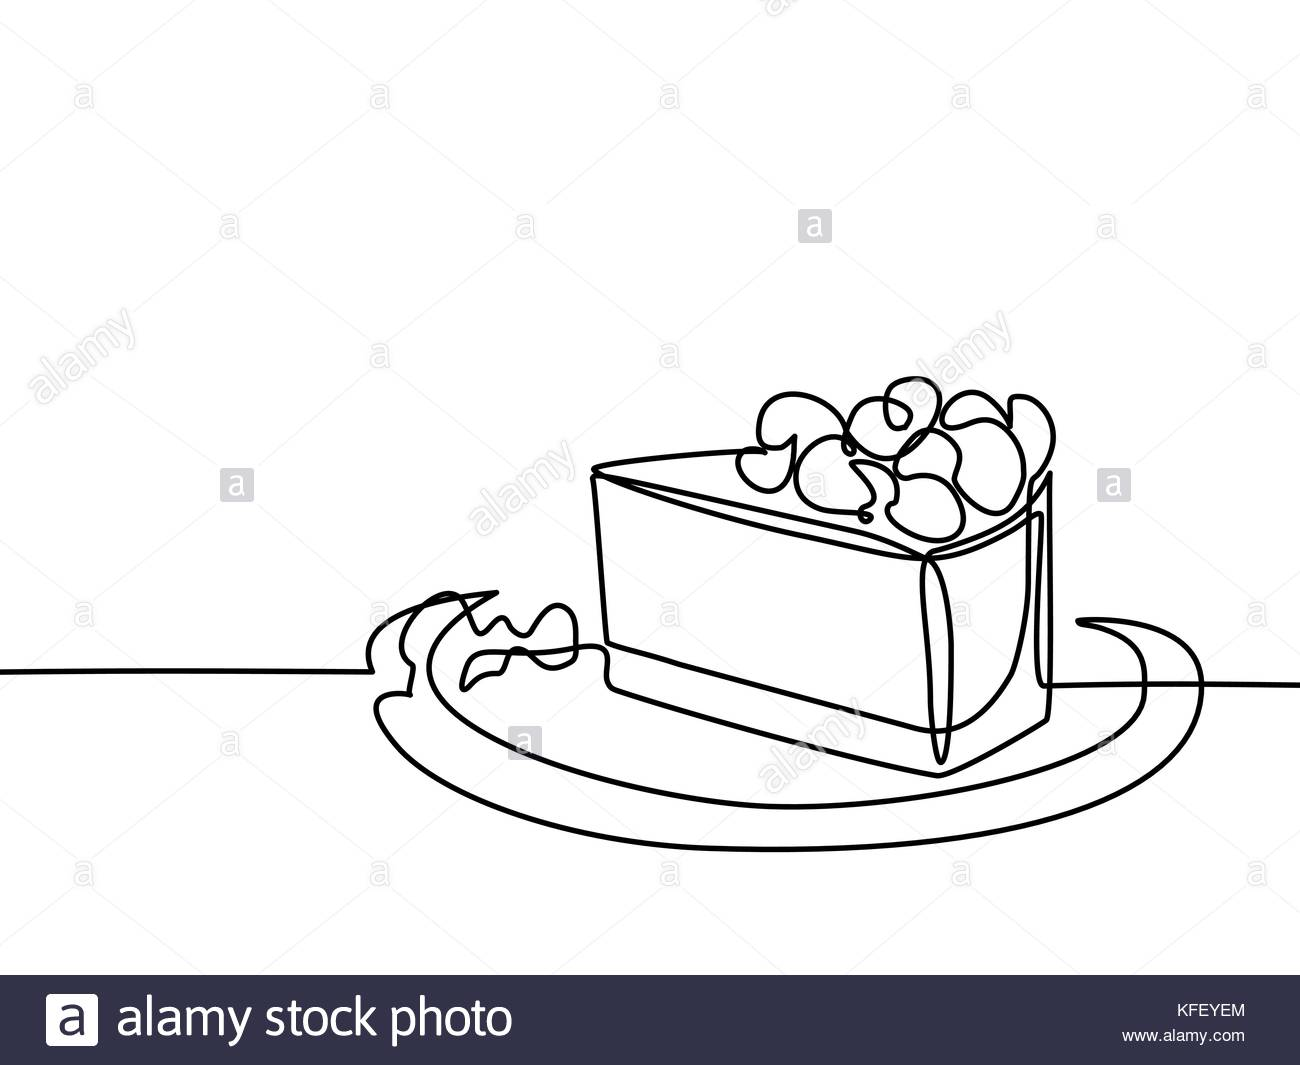 1300x1065 Continuous Line Drawing Of Piece Cake. Vector Illustration Black